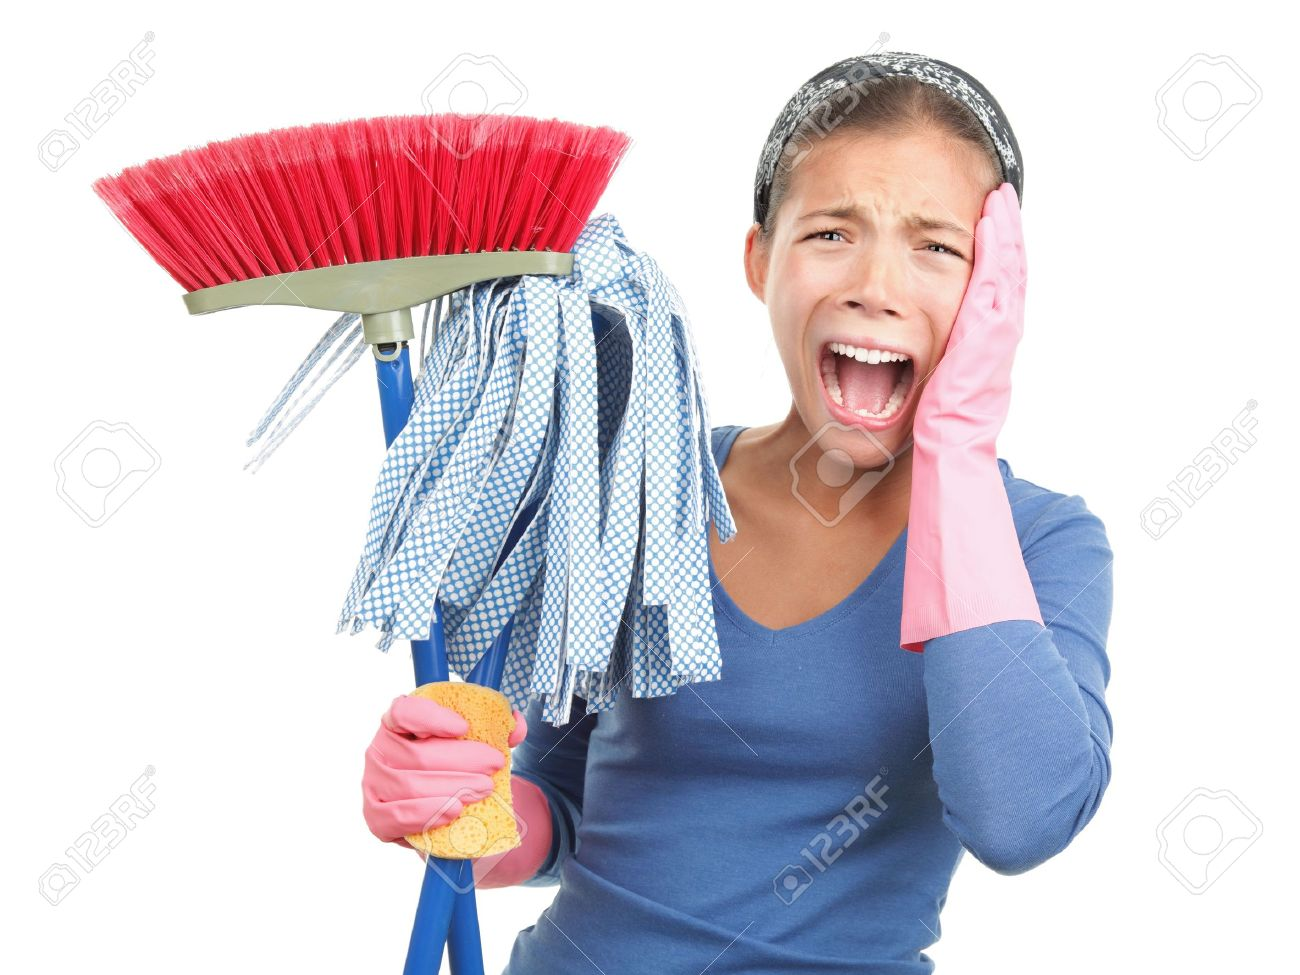 spring cleaning despair - oh no! woman upset and fed up about